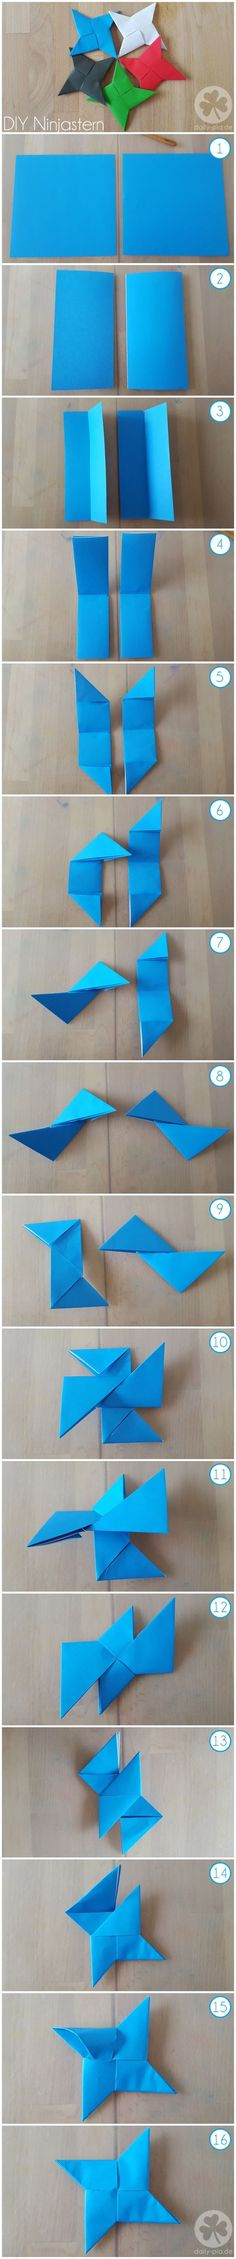 Lego Ninjago Geburtstag DIY instructions ninja star / throwing star made of paper (origami) for a ni Ninja Birthday Parties, Ninja Turtle Birthday, Ninja Turtle Party, Birthday Fun, Ninja Turtles, Karate Birthday, Lego Parties, Women Birthday, Lego Ninjago